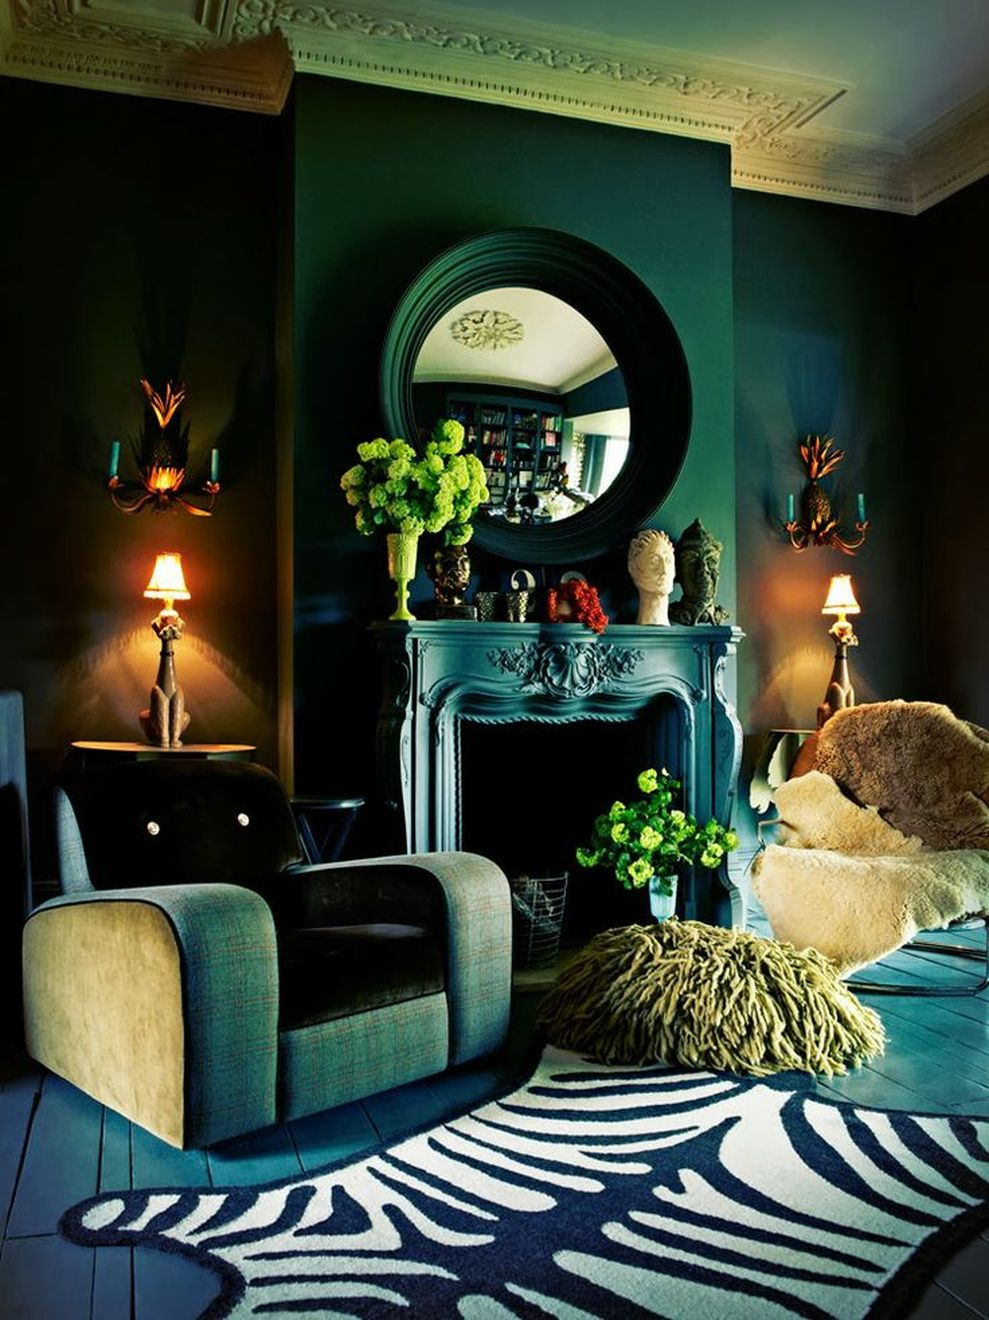 Living Room Design Green: Stylish Dark Green Walls In Living Room Design Ideas 26